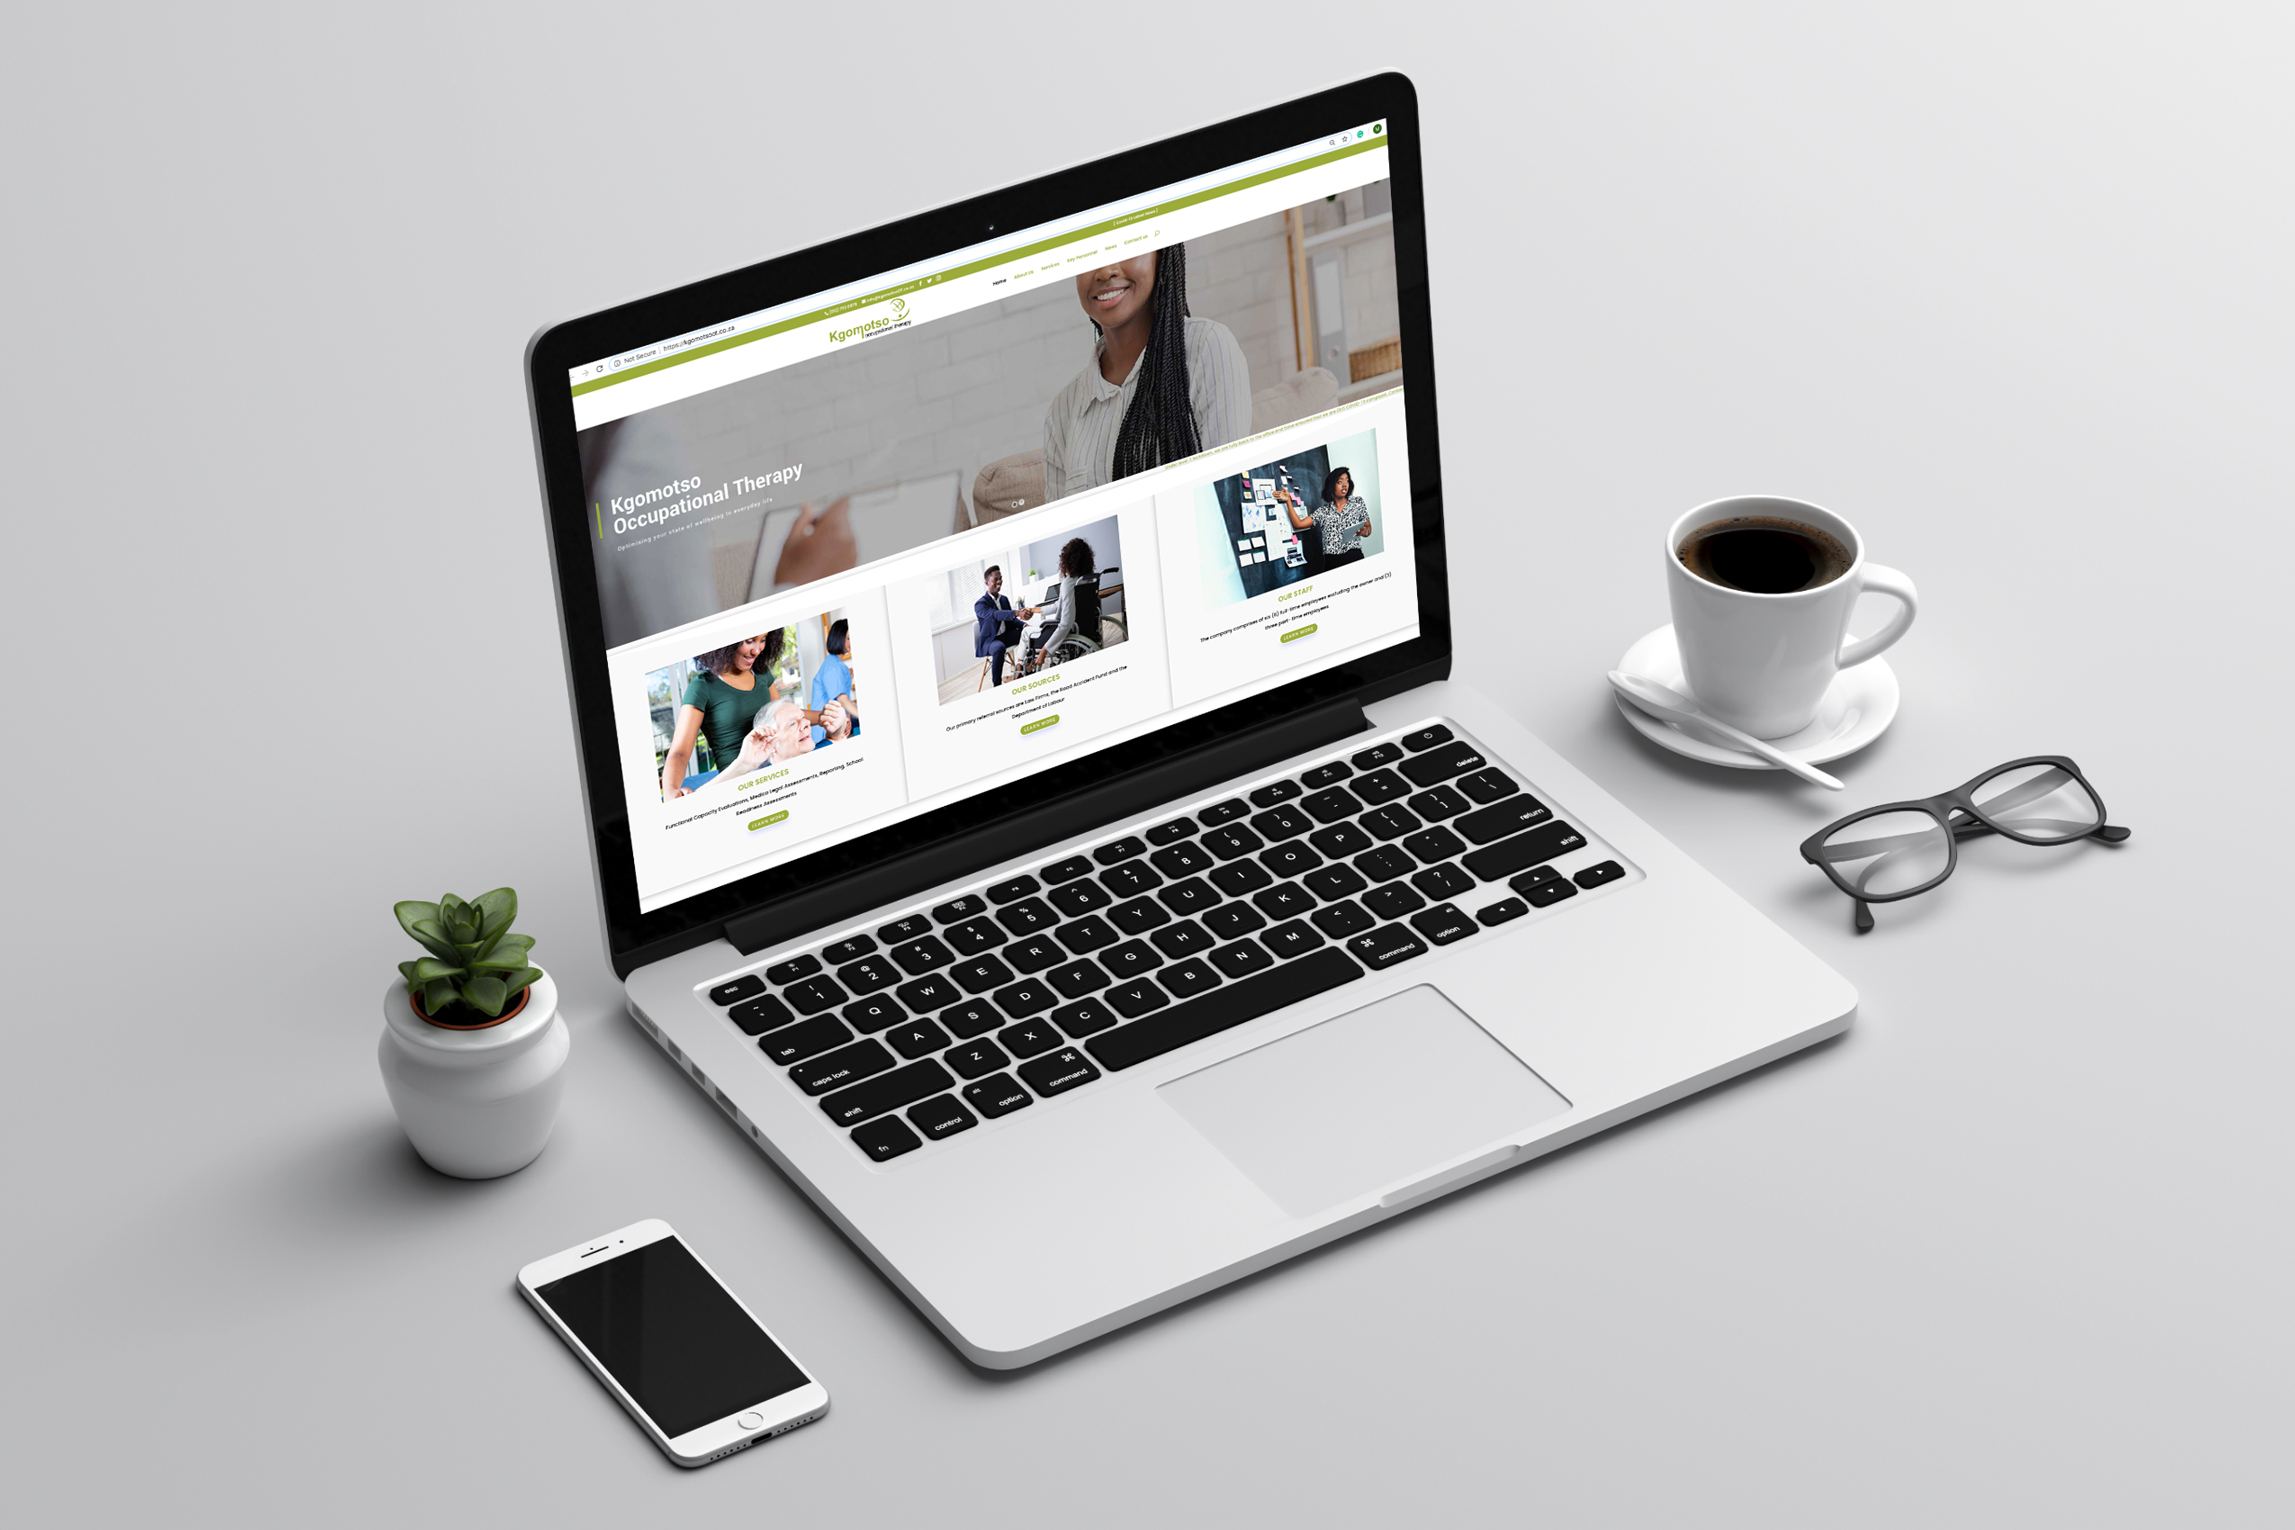 Kgomotso-Occupational-Therapy-website-on-laptop